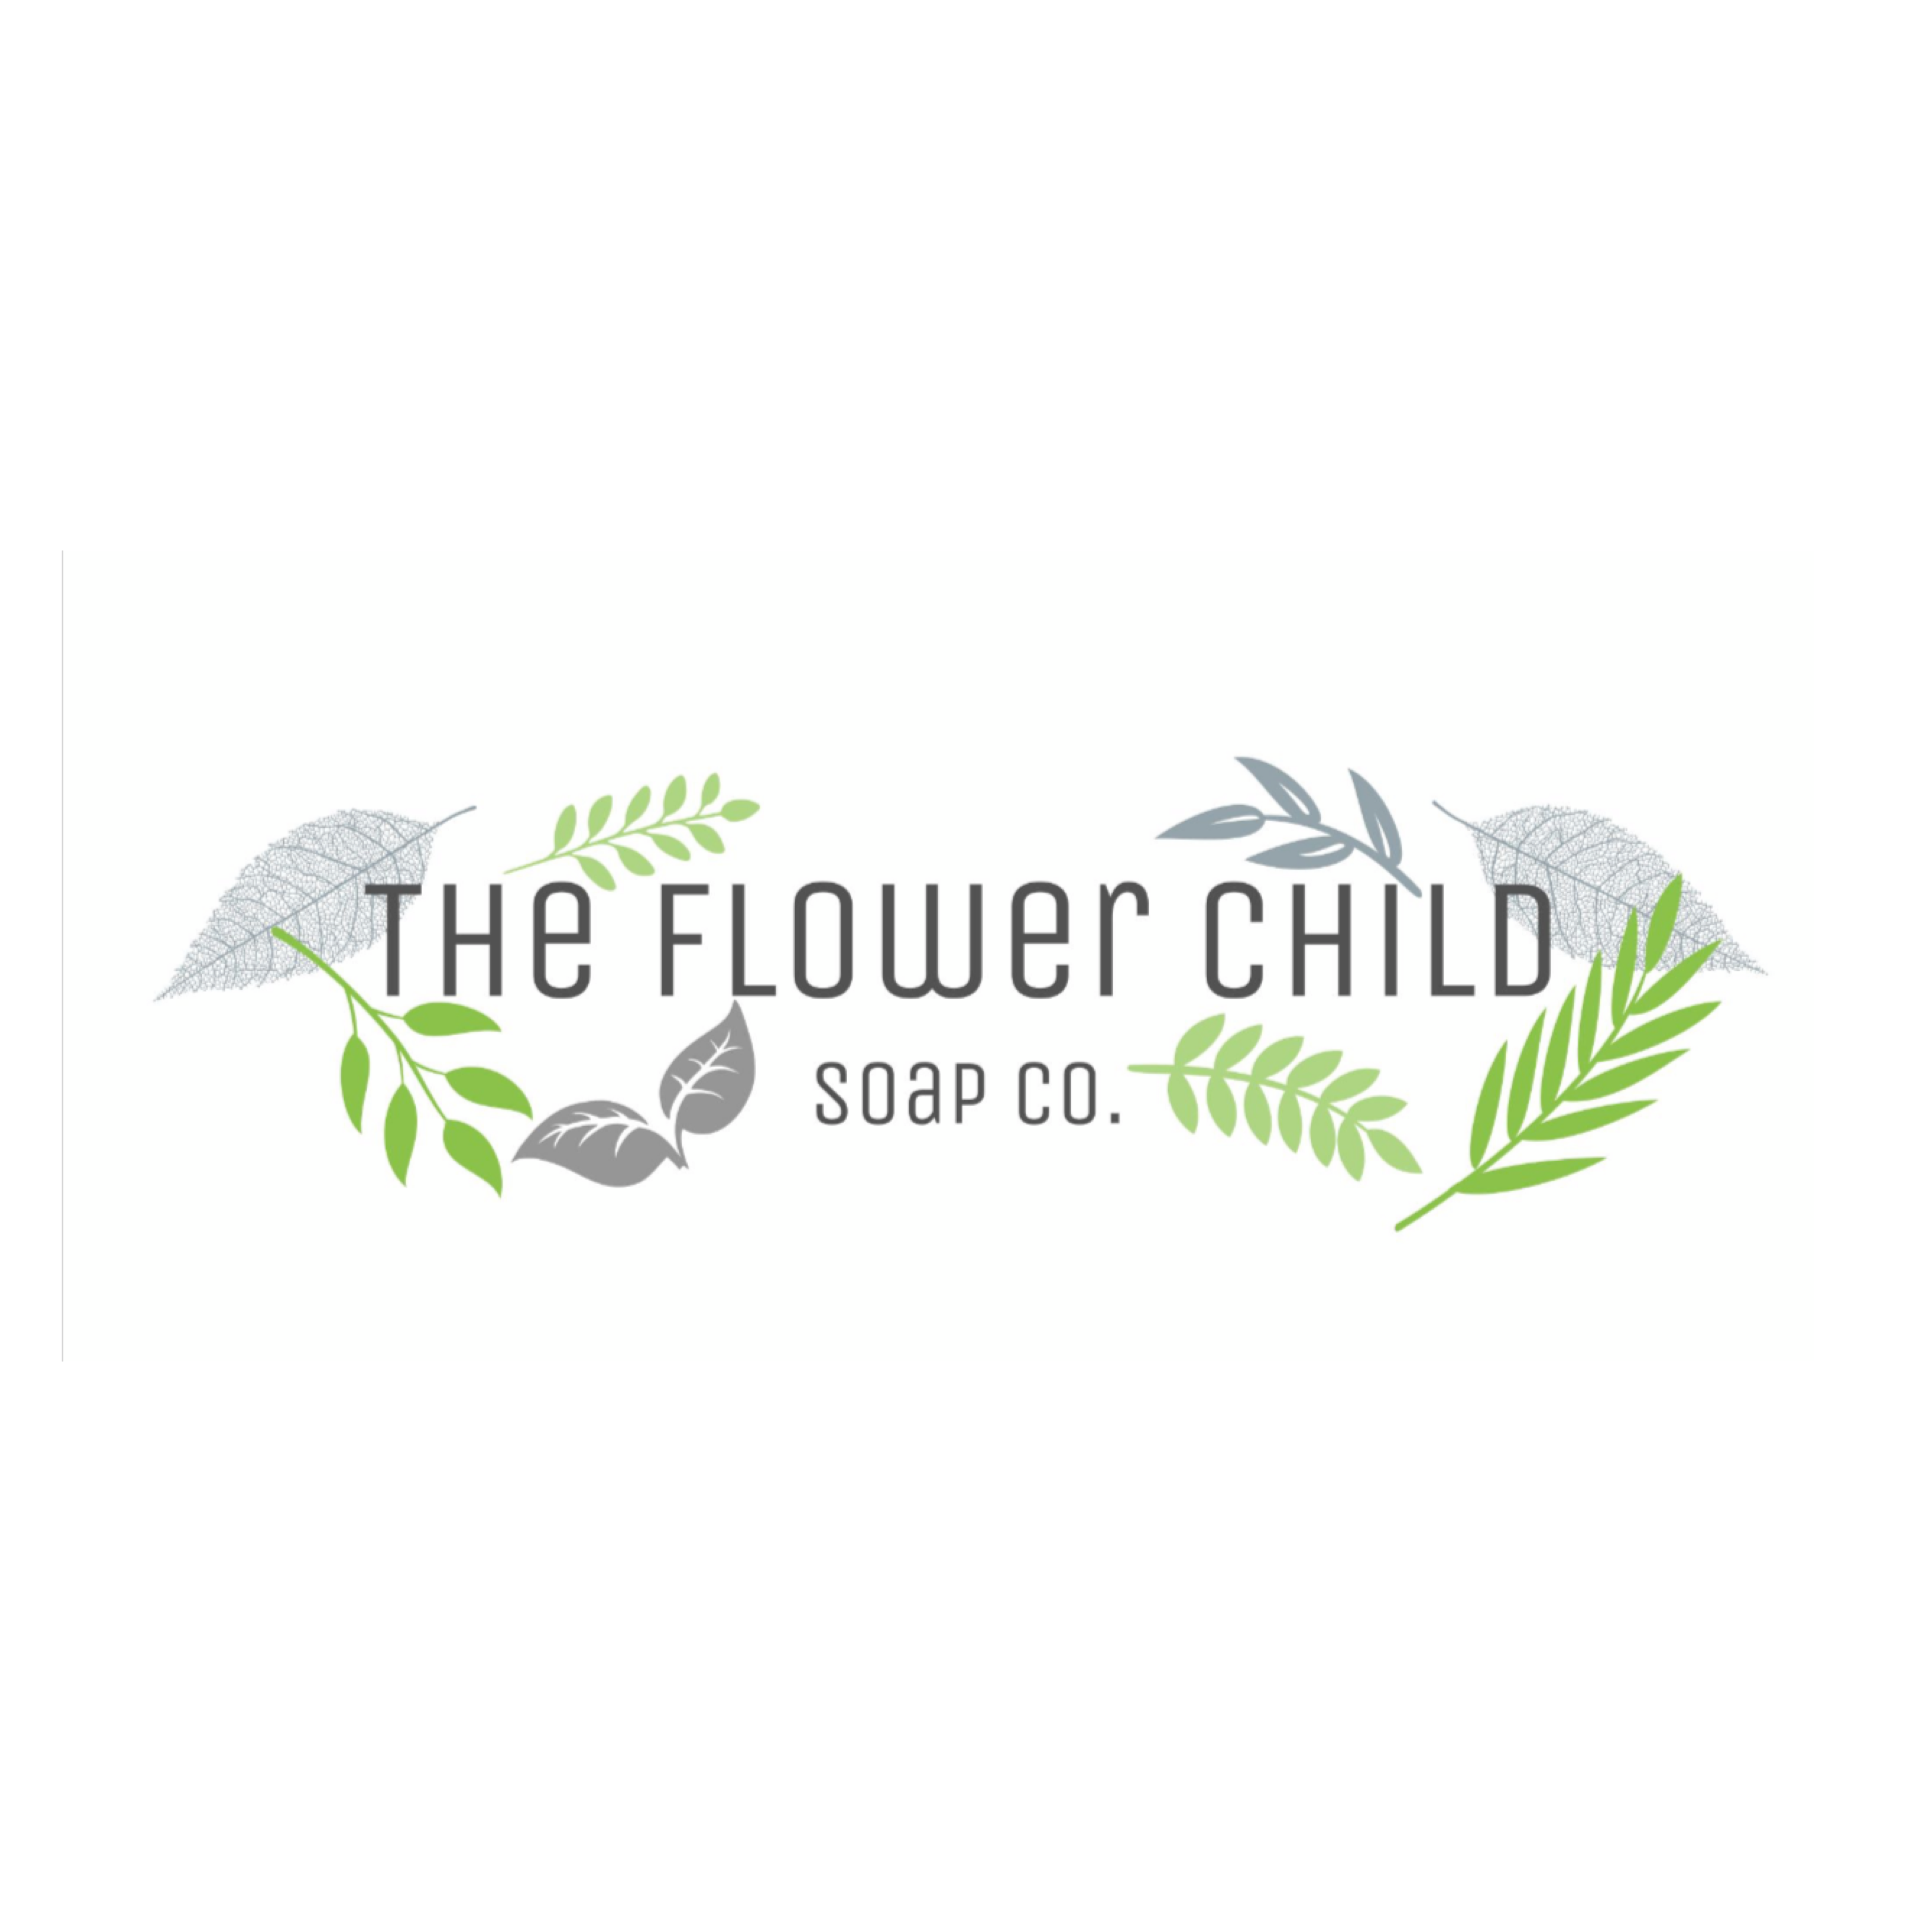 The Flower Child Soap Co